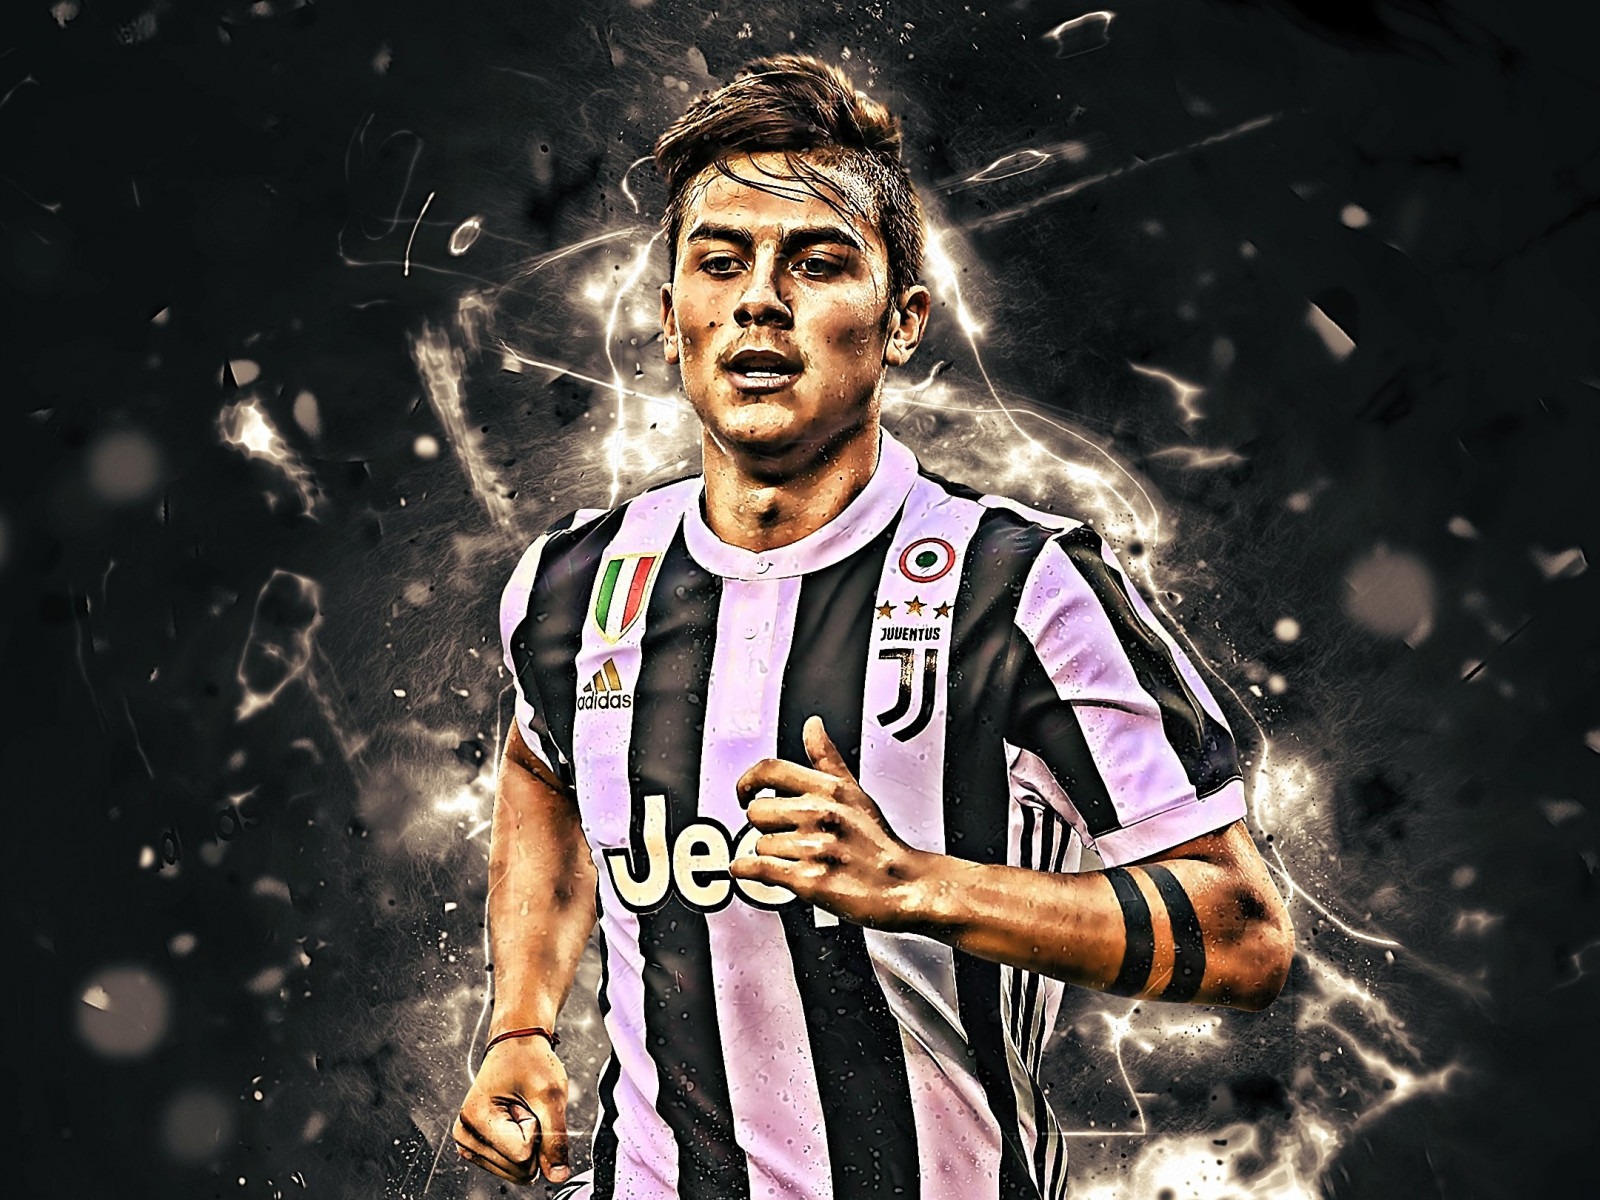 Paulo Dybala wallpaper 1600x1200